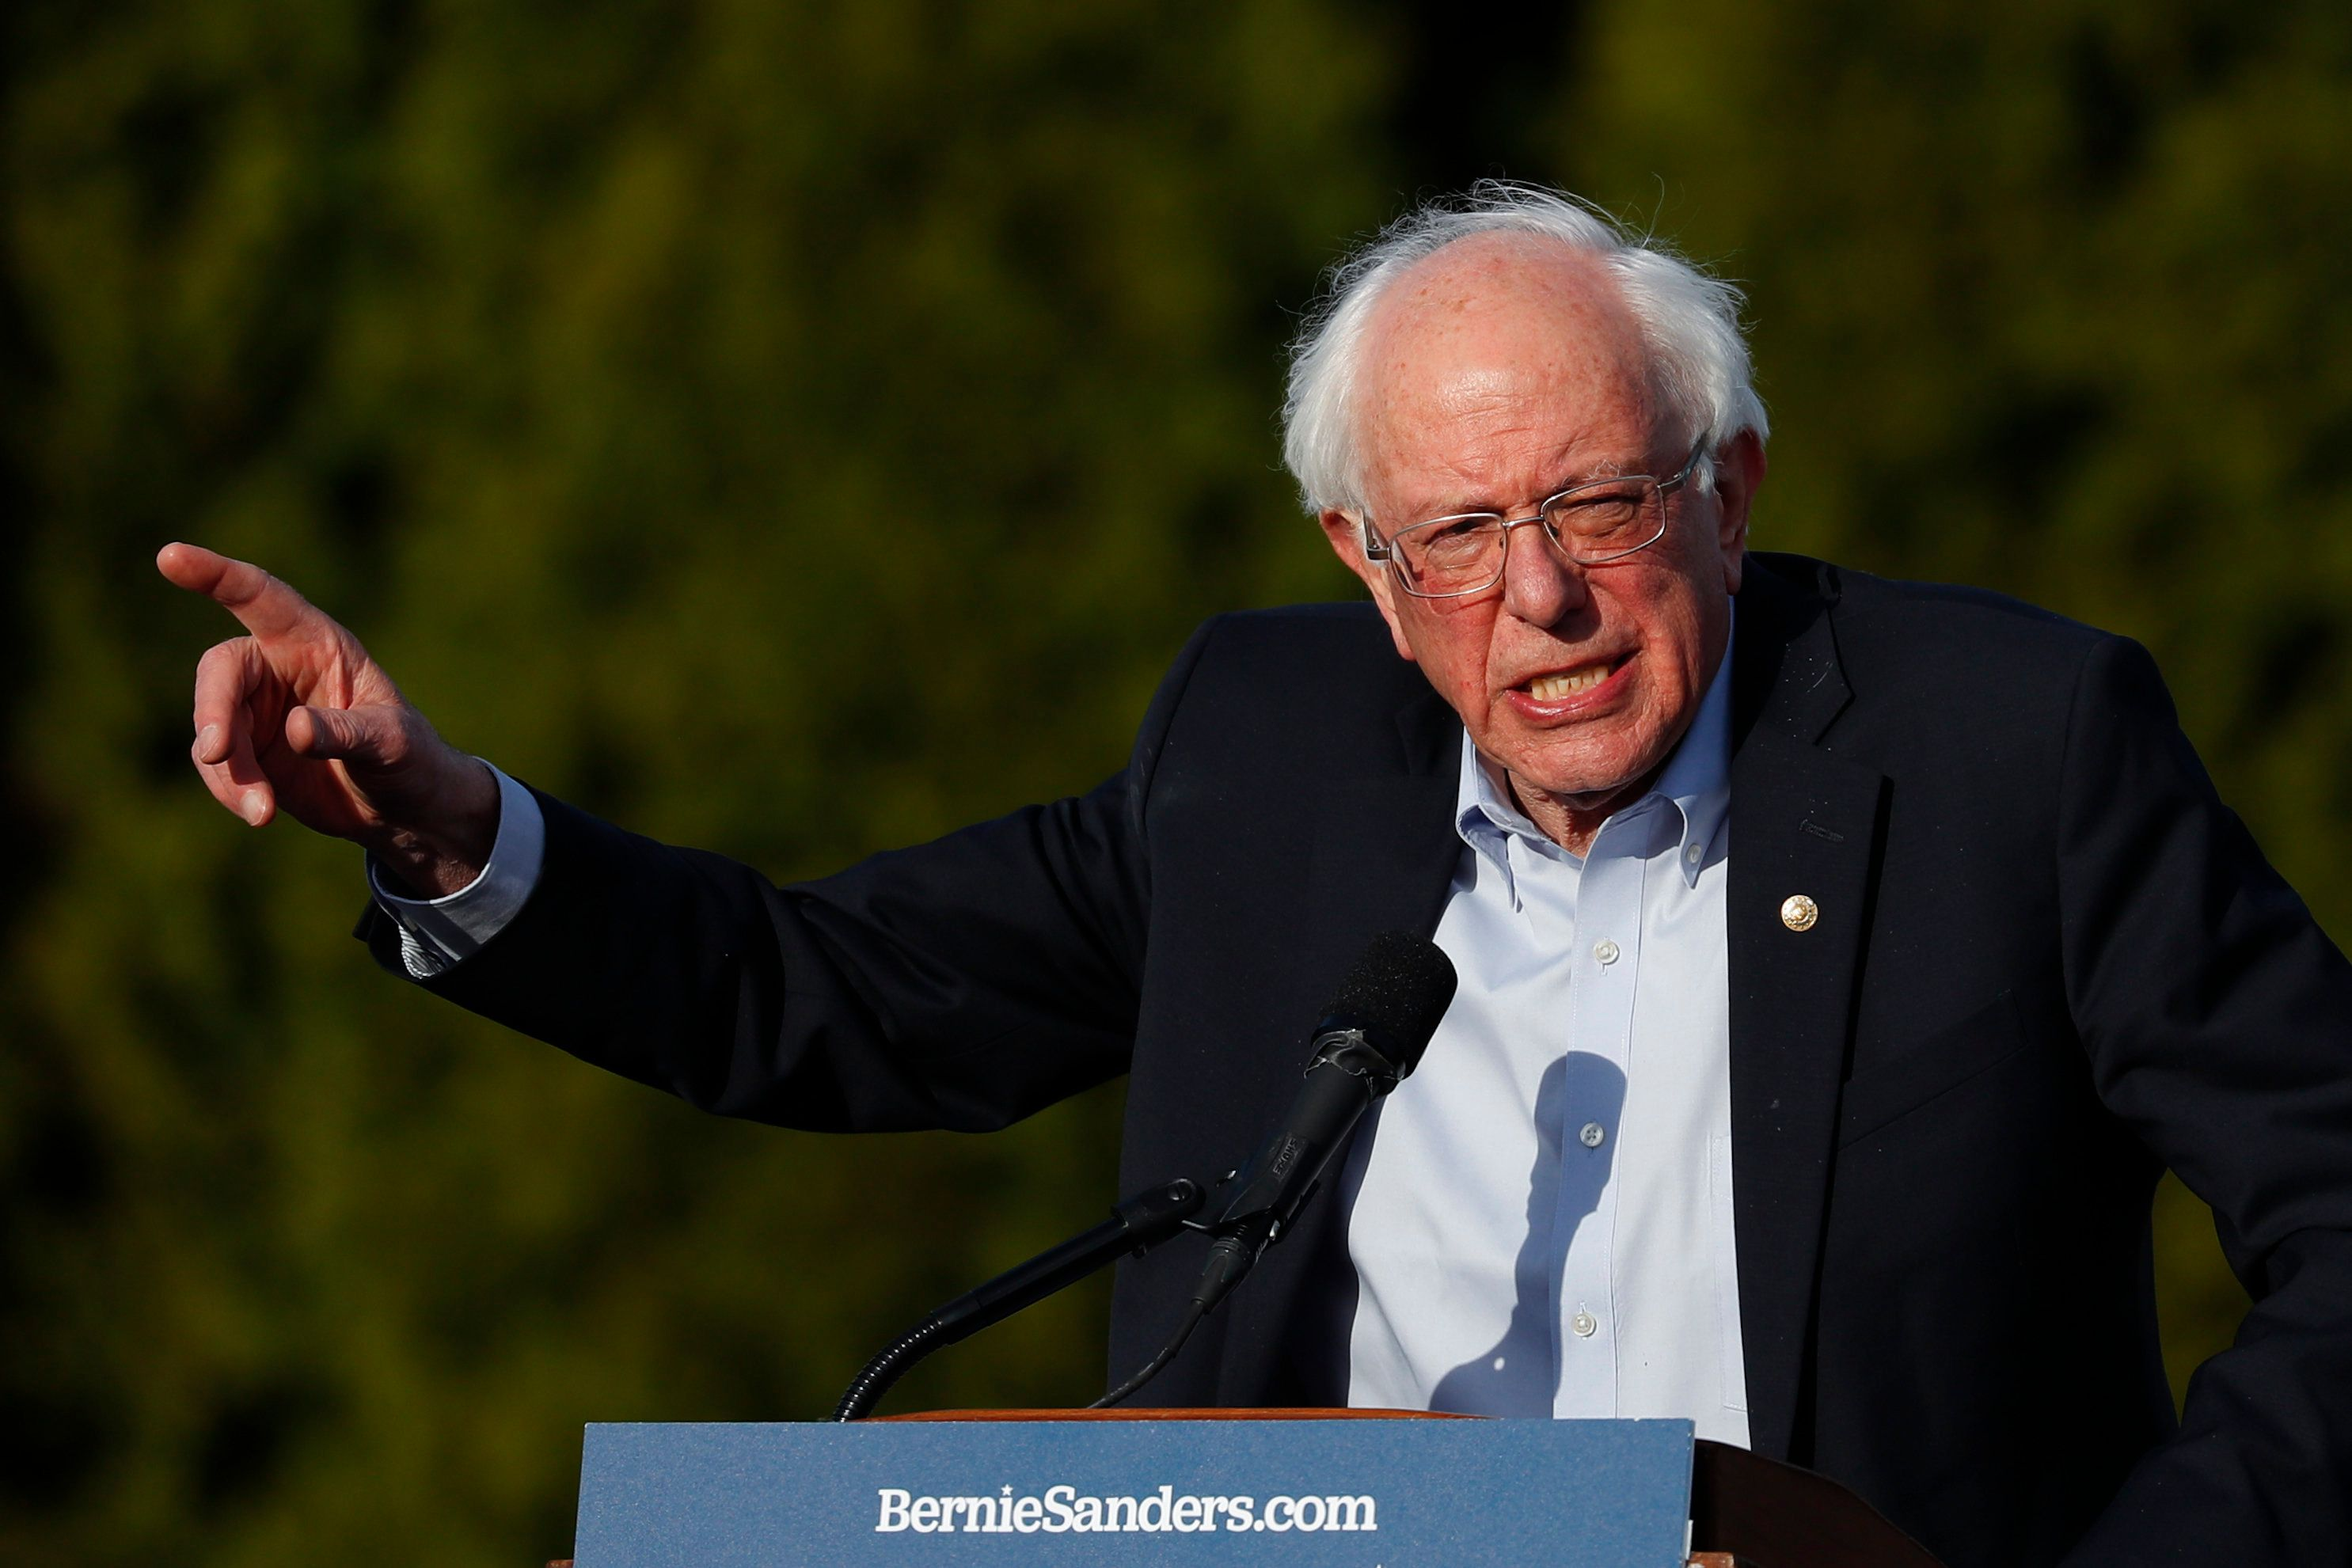 Democratic presidential candidate Sen. Bernie Sanders, I-Vt., speaks during a rally in Warren, Mich., Saturday, April 13, 2019. (AP Photo/Paul Sancya)